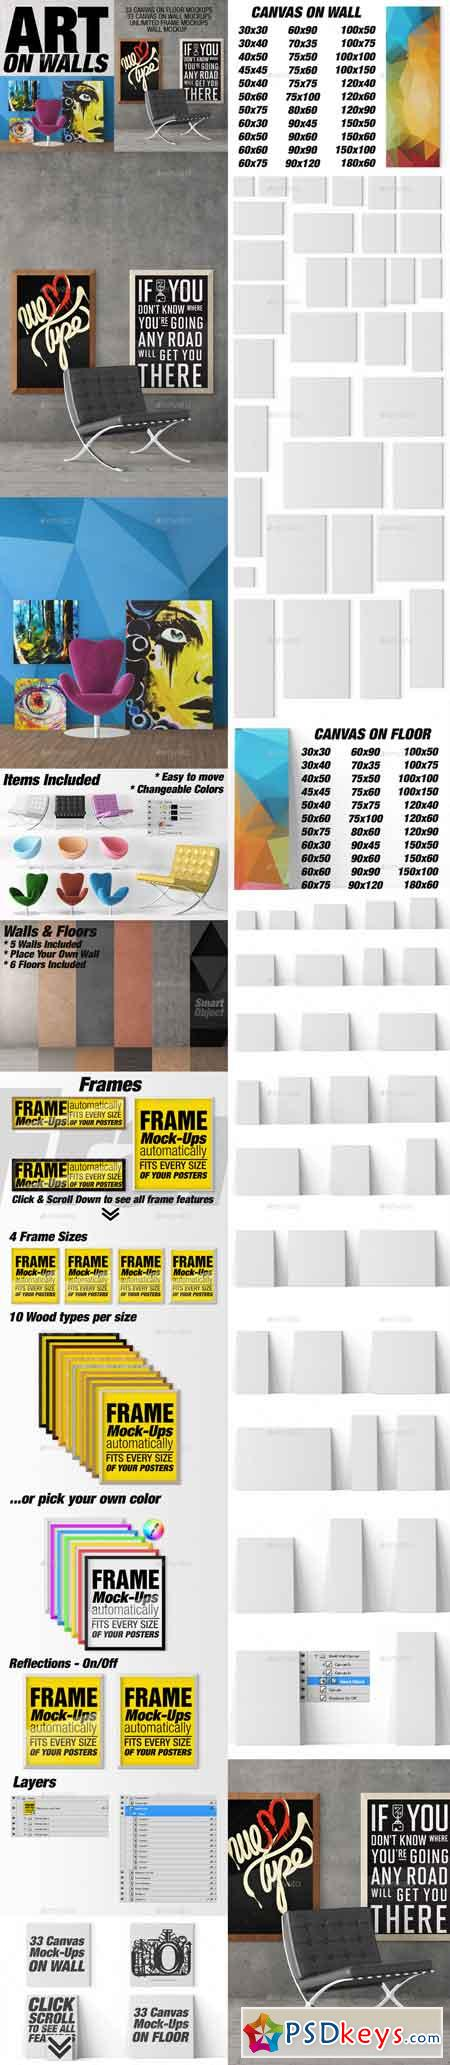 American Frame - Buy Metal, Wood, & Canvas Picture Frames